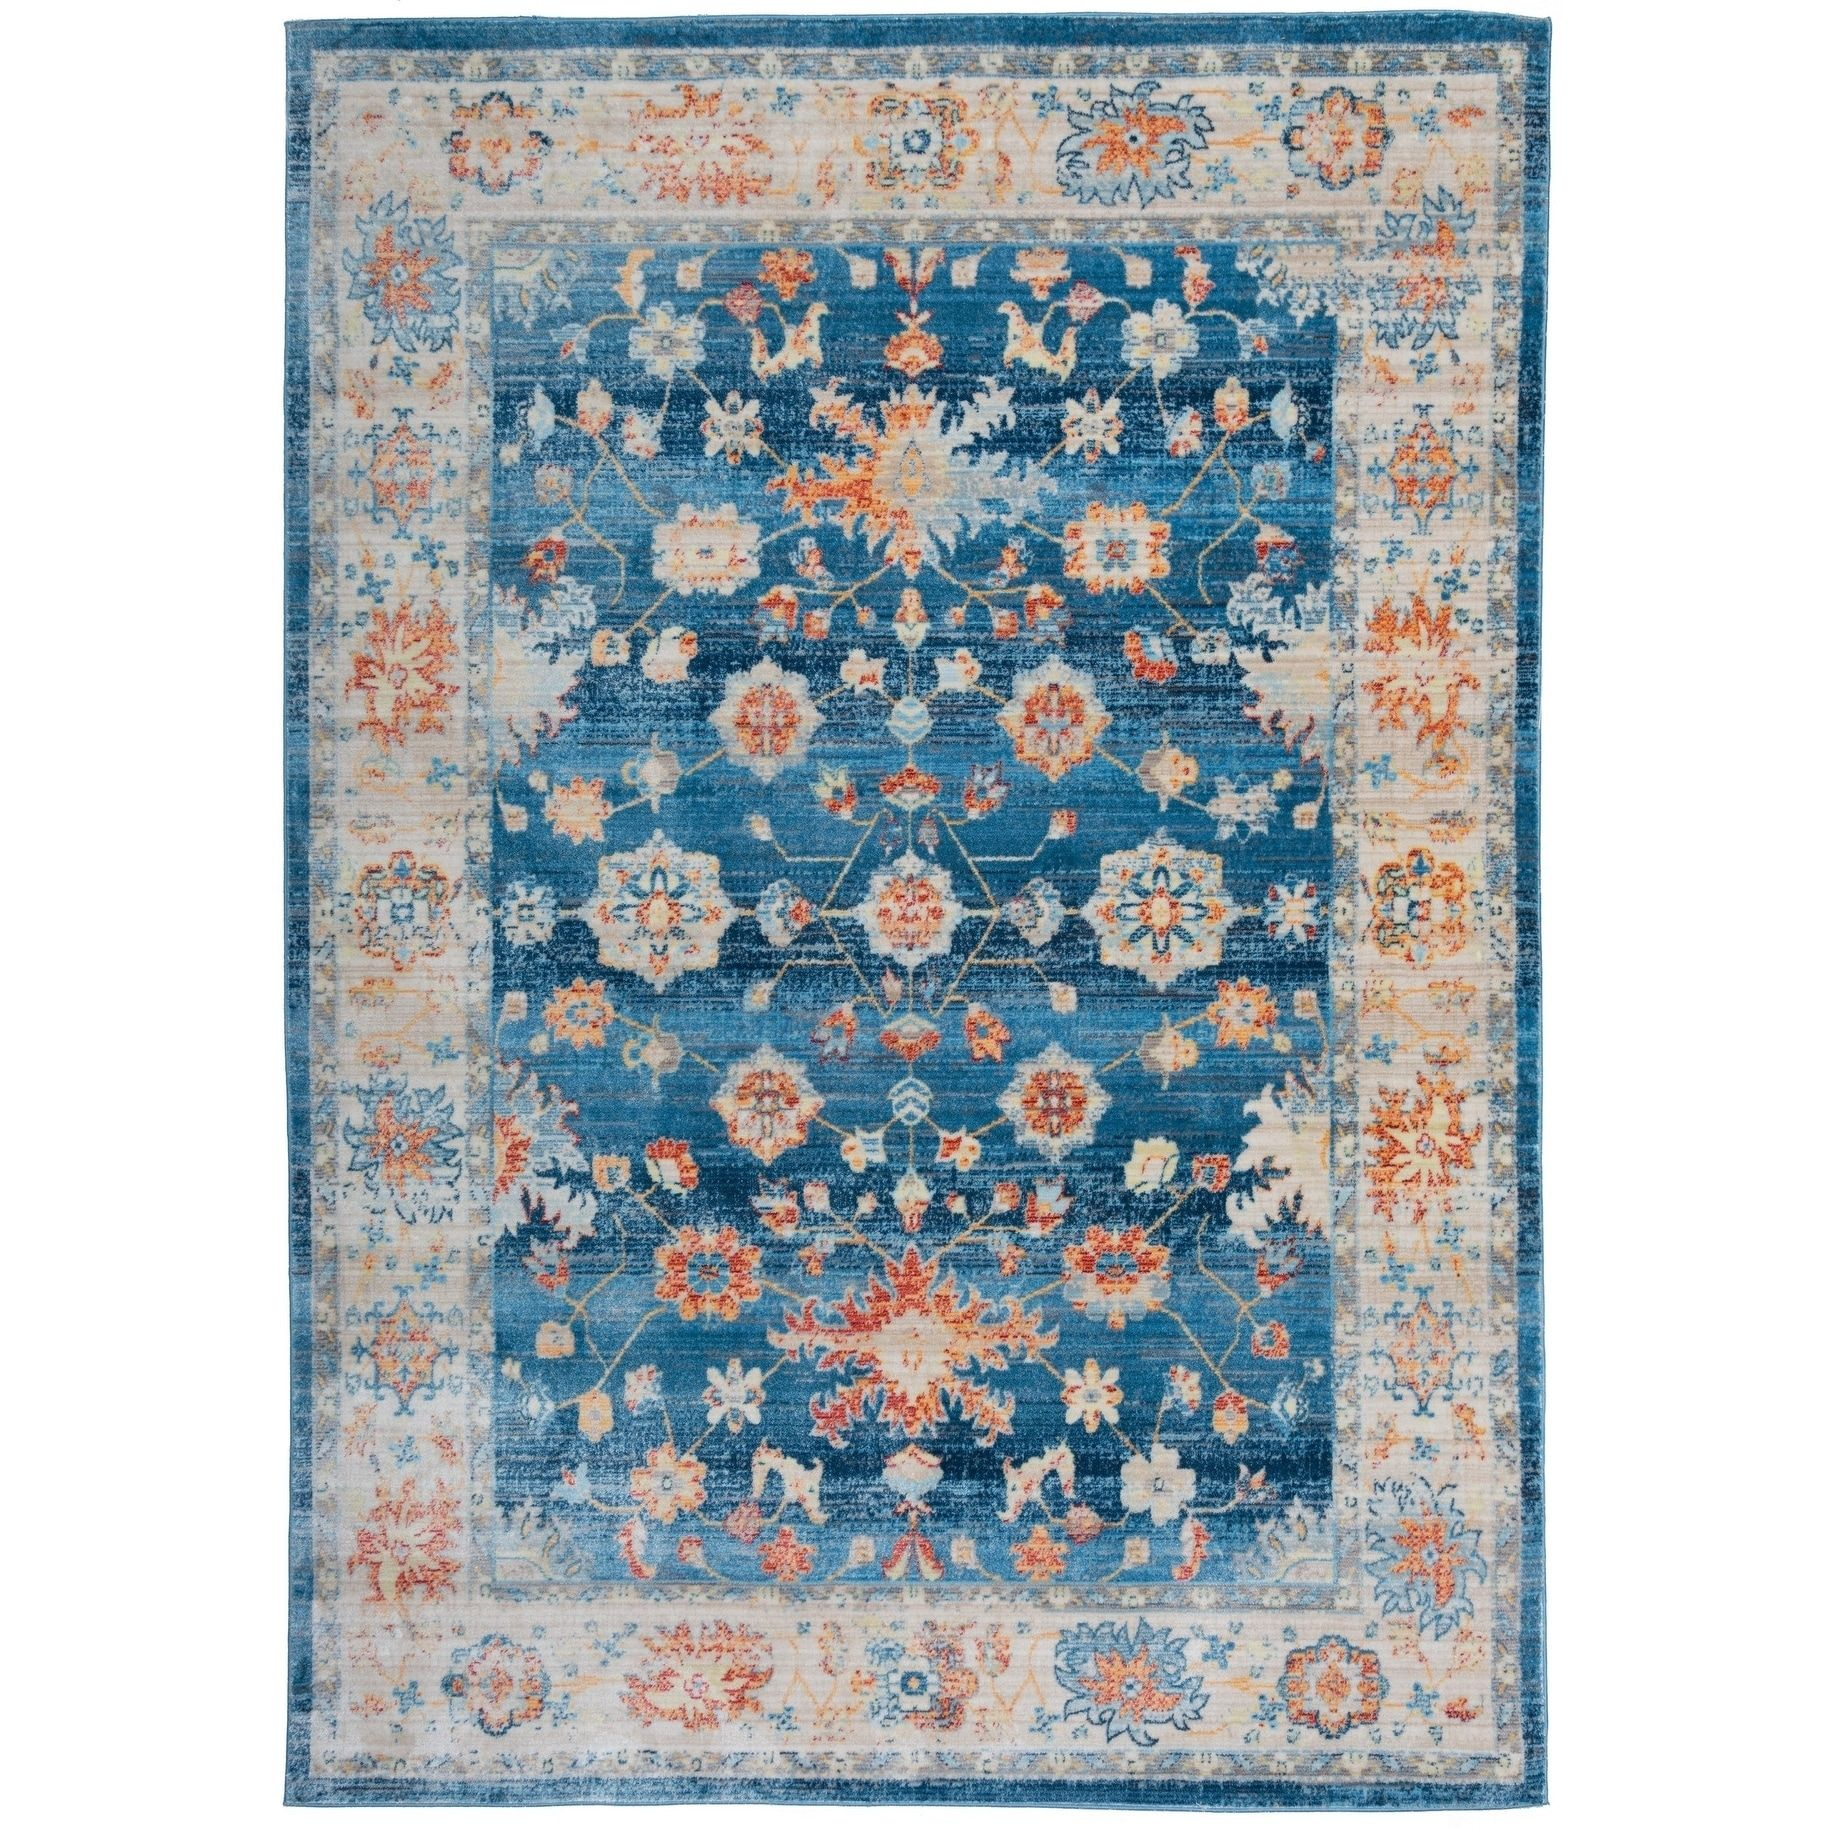 Osti Traditional Oriental Distressed Blue Fabric Cotton Indoor Rectangular Area Rug 5 3 X 7 4 Size